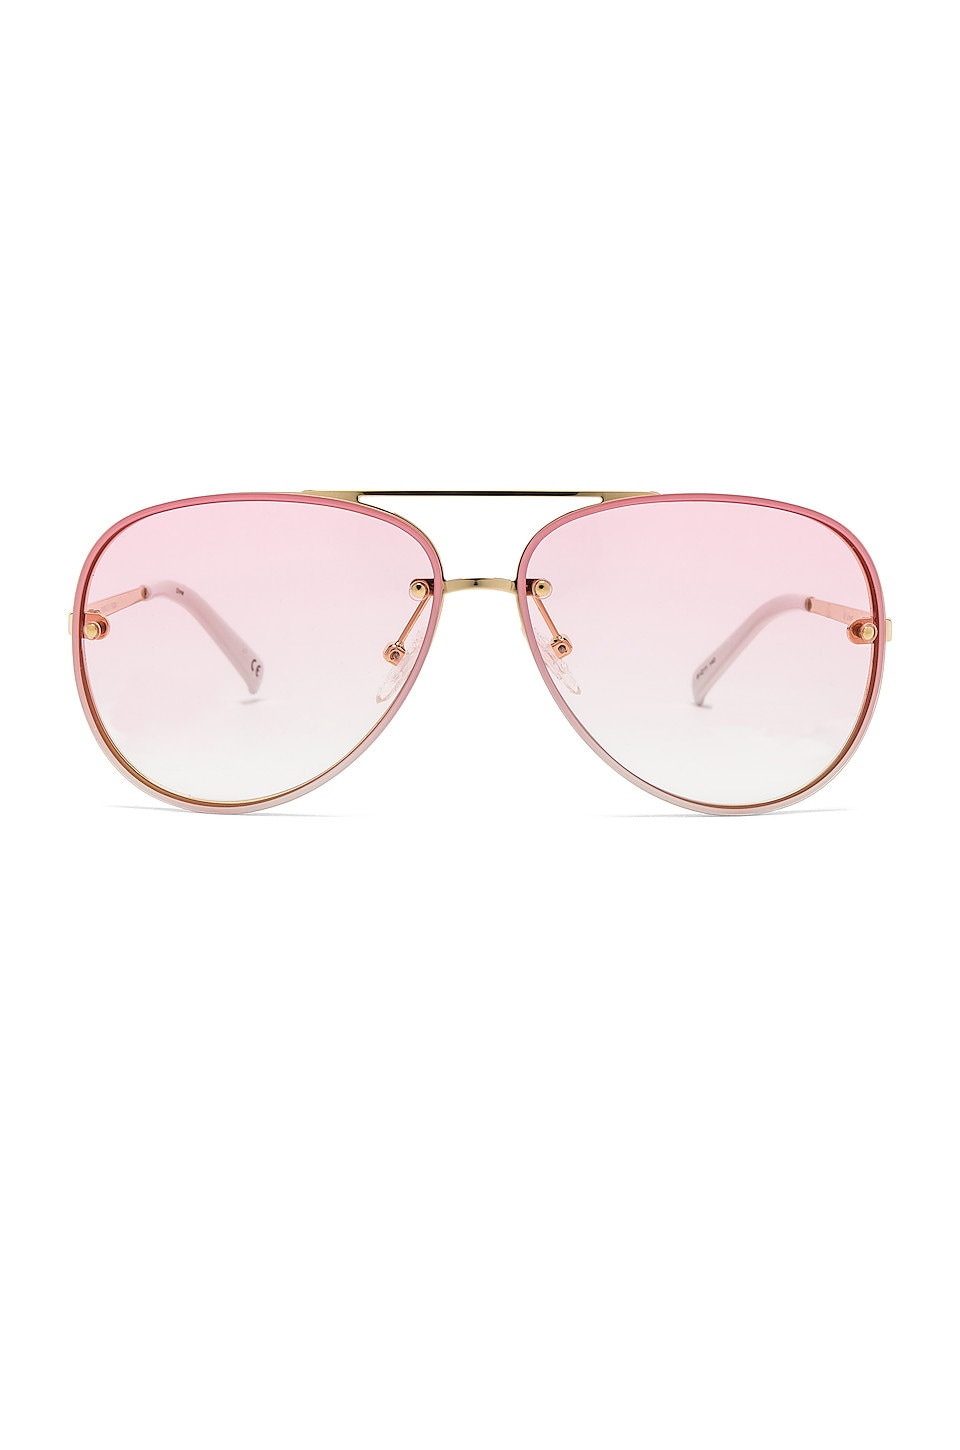 Le Specs Hyperspace in Bright Gold, White & Pink Gradient